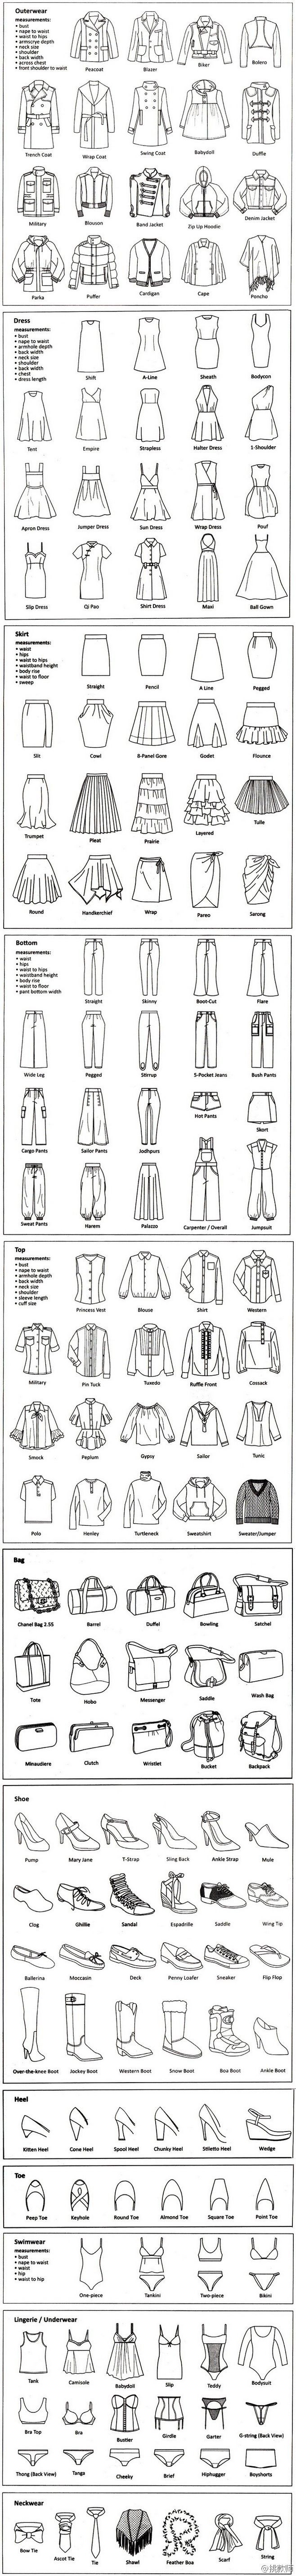 Garment Fashion Terminology | Fashion Design Sewing, Resources, Techniques, and Tutorials | Ideas for the Aspiring Fashion Designer